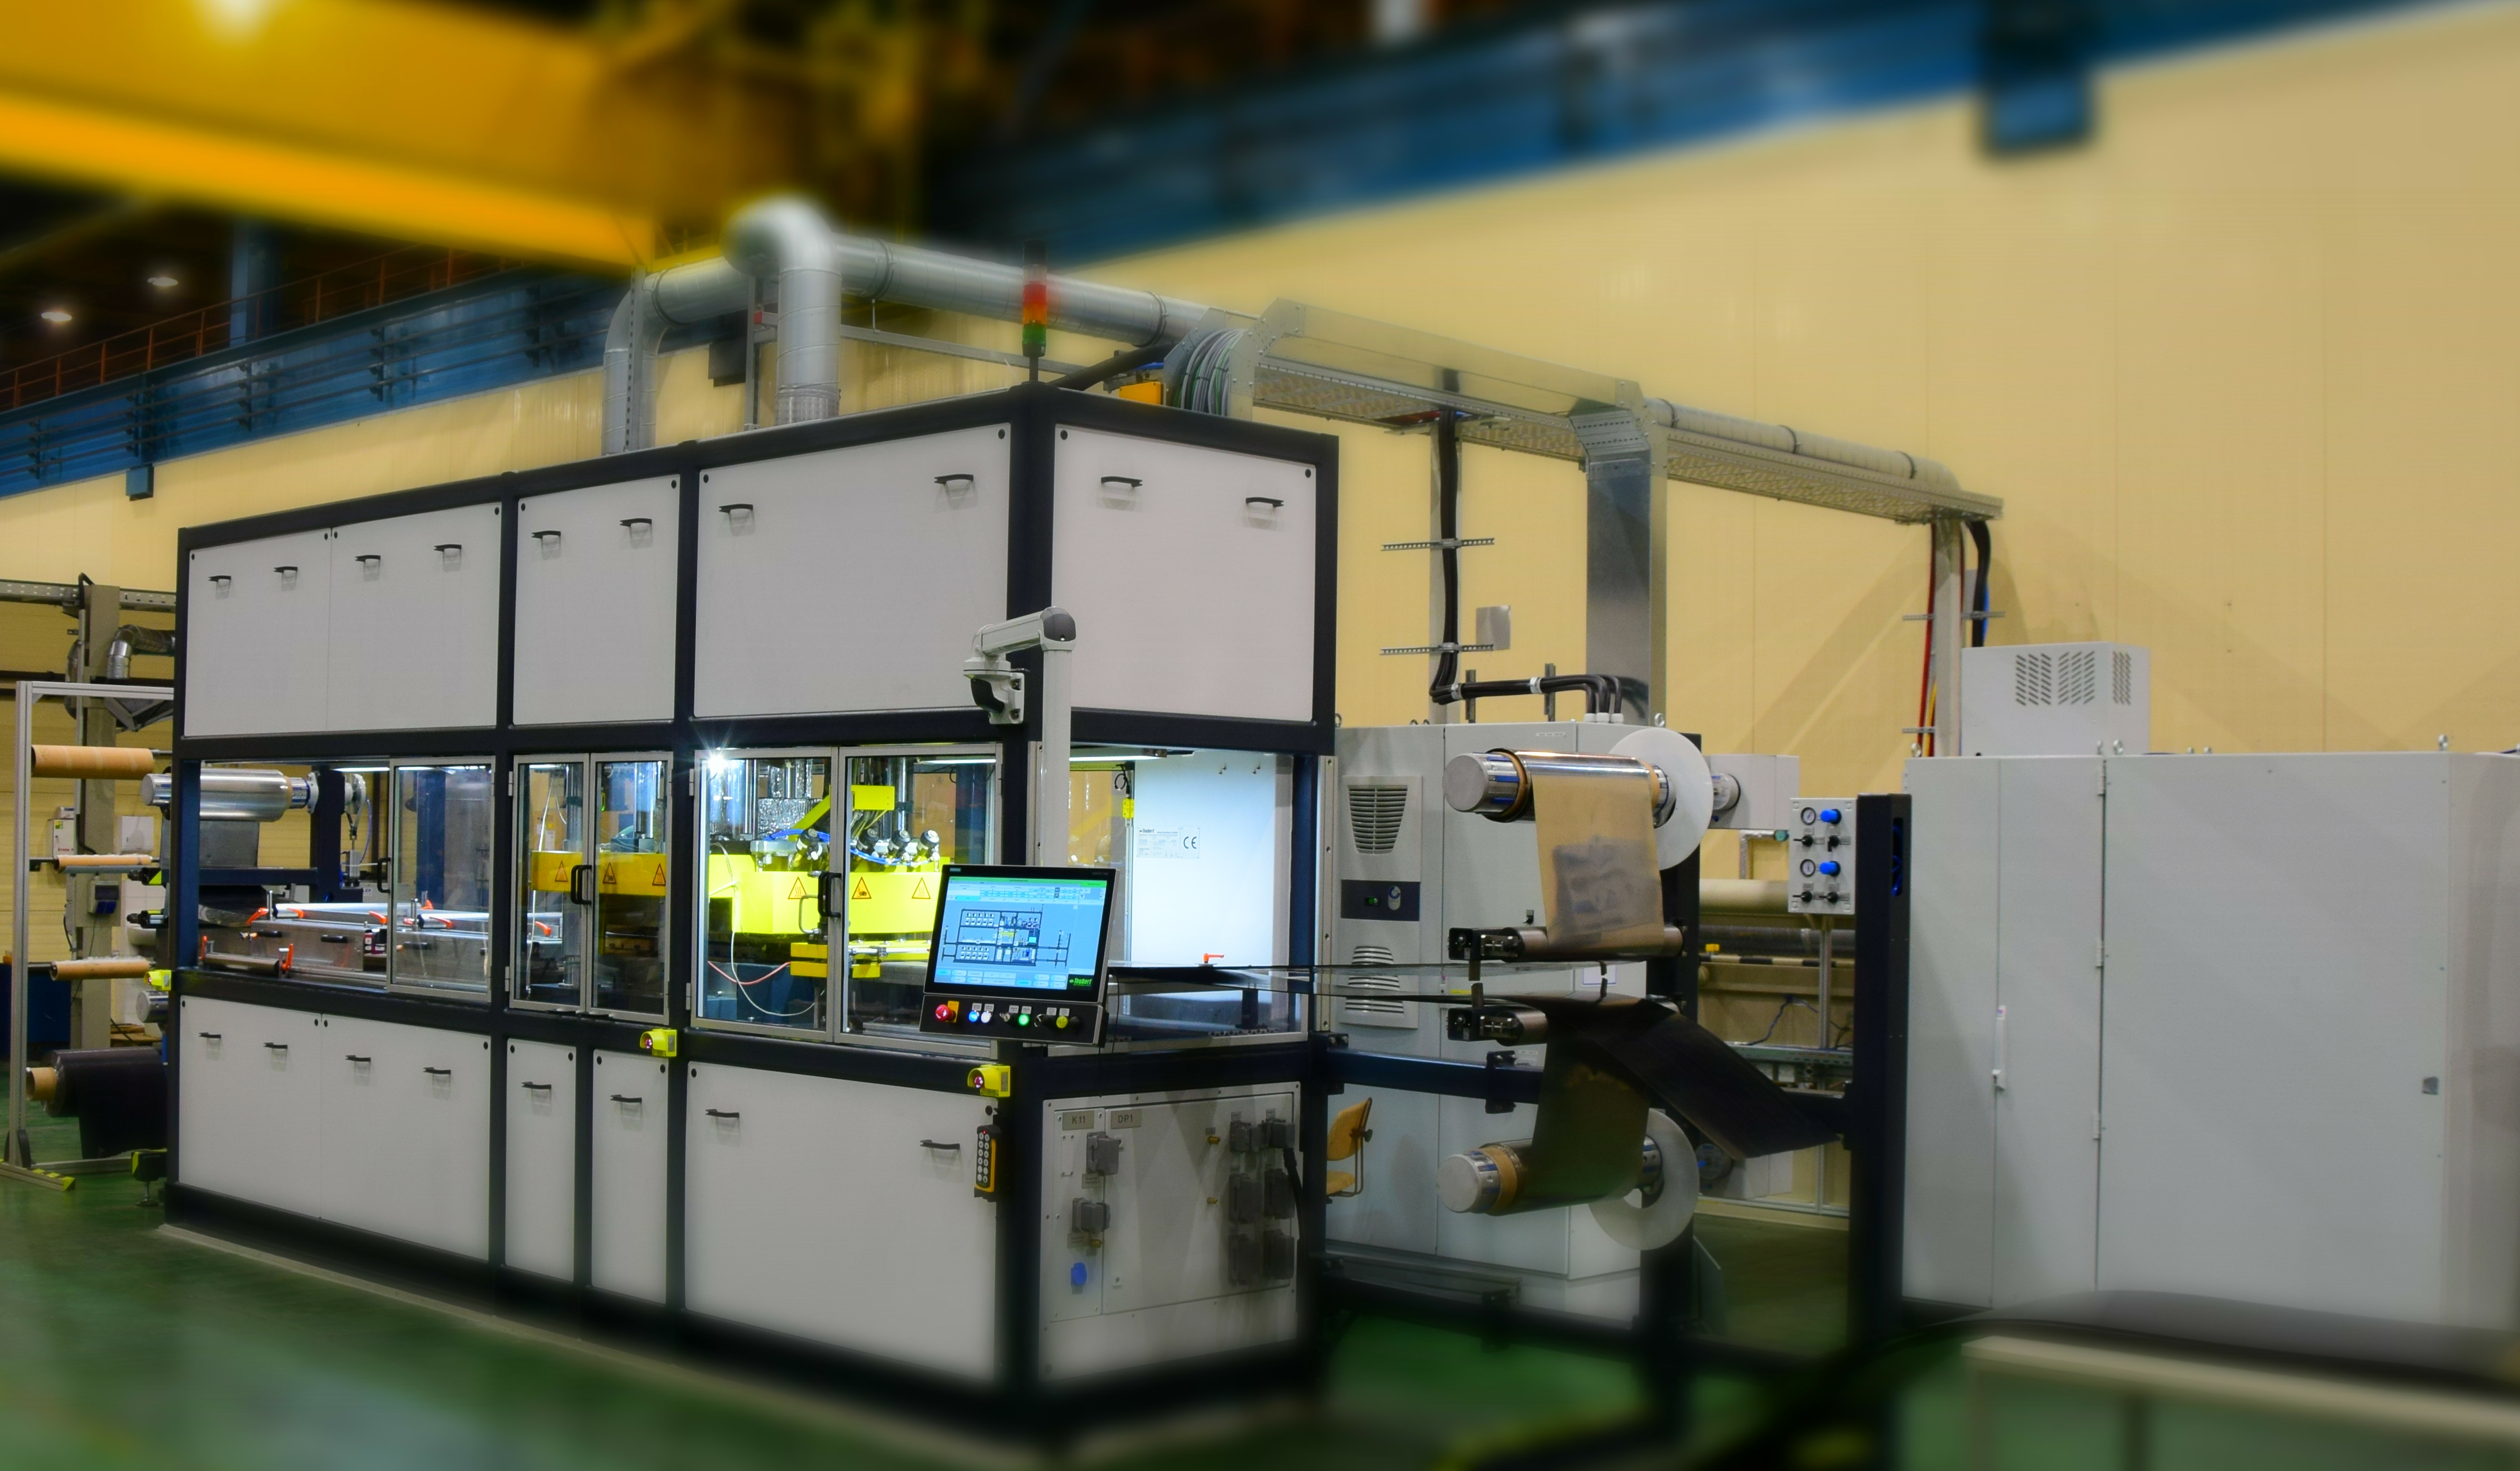 The picture shows the overall view of the CCM Molding System IHP 100/66 CCM of the company Teubert Maschinenbau GmbH